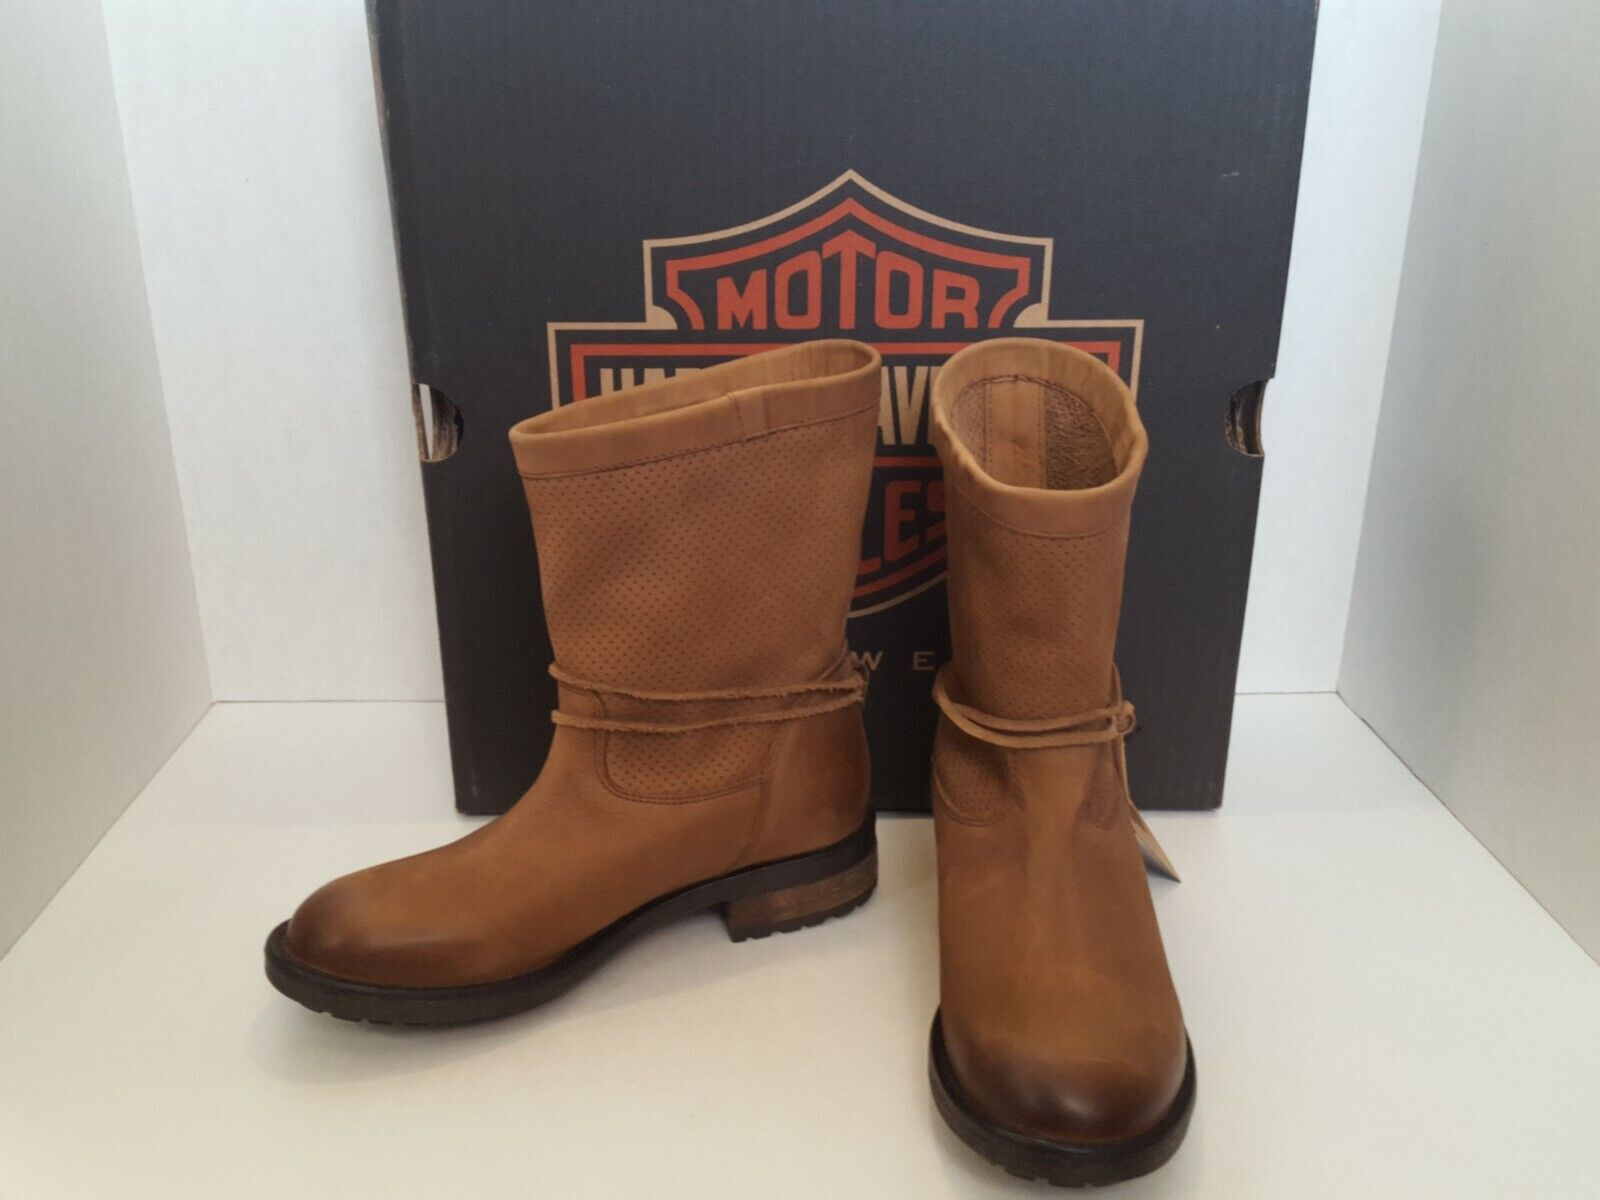 Harley Davidson Womens Sicilia tan boots size 6 new with tags motorcycle riding